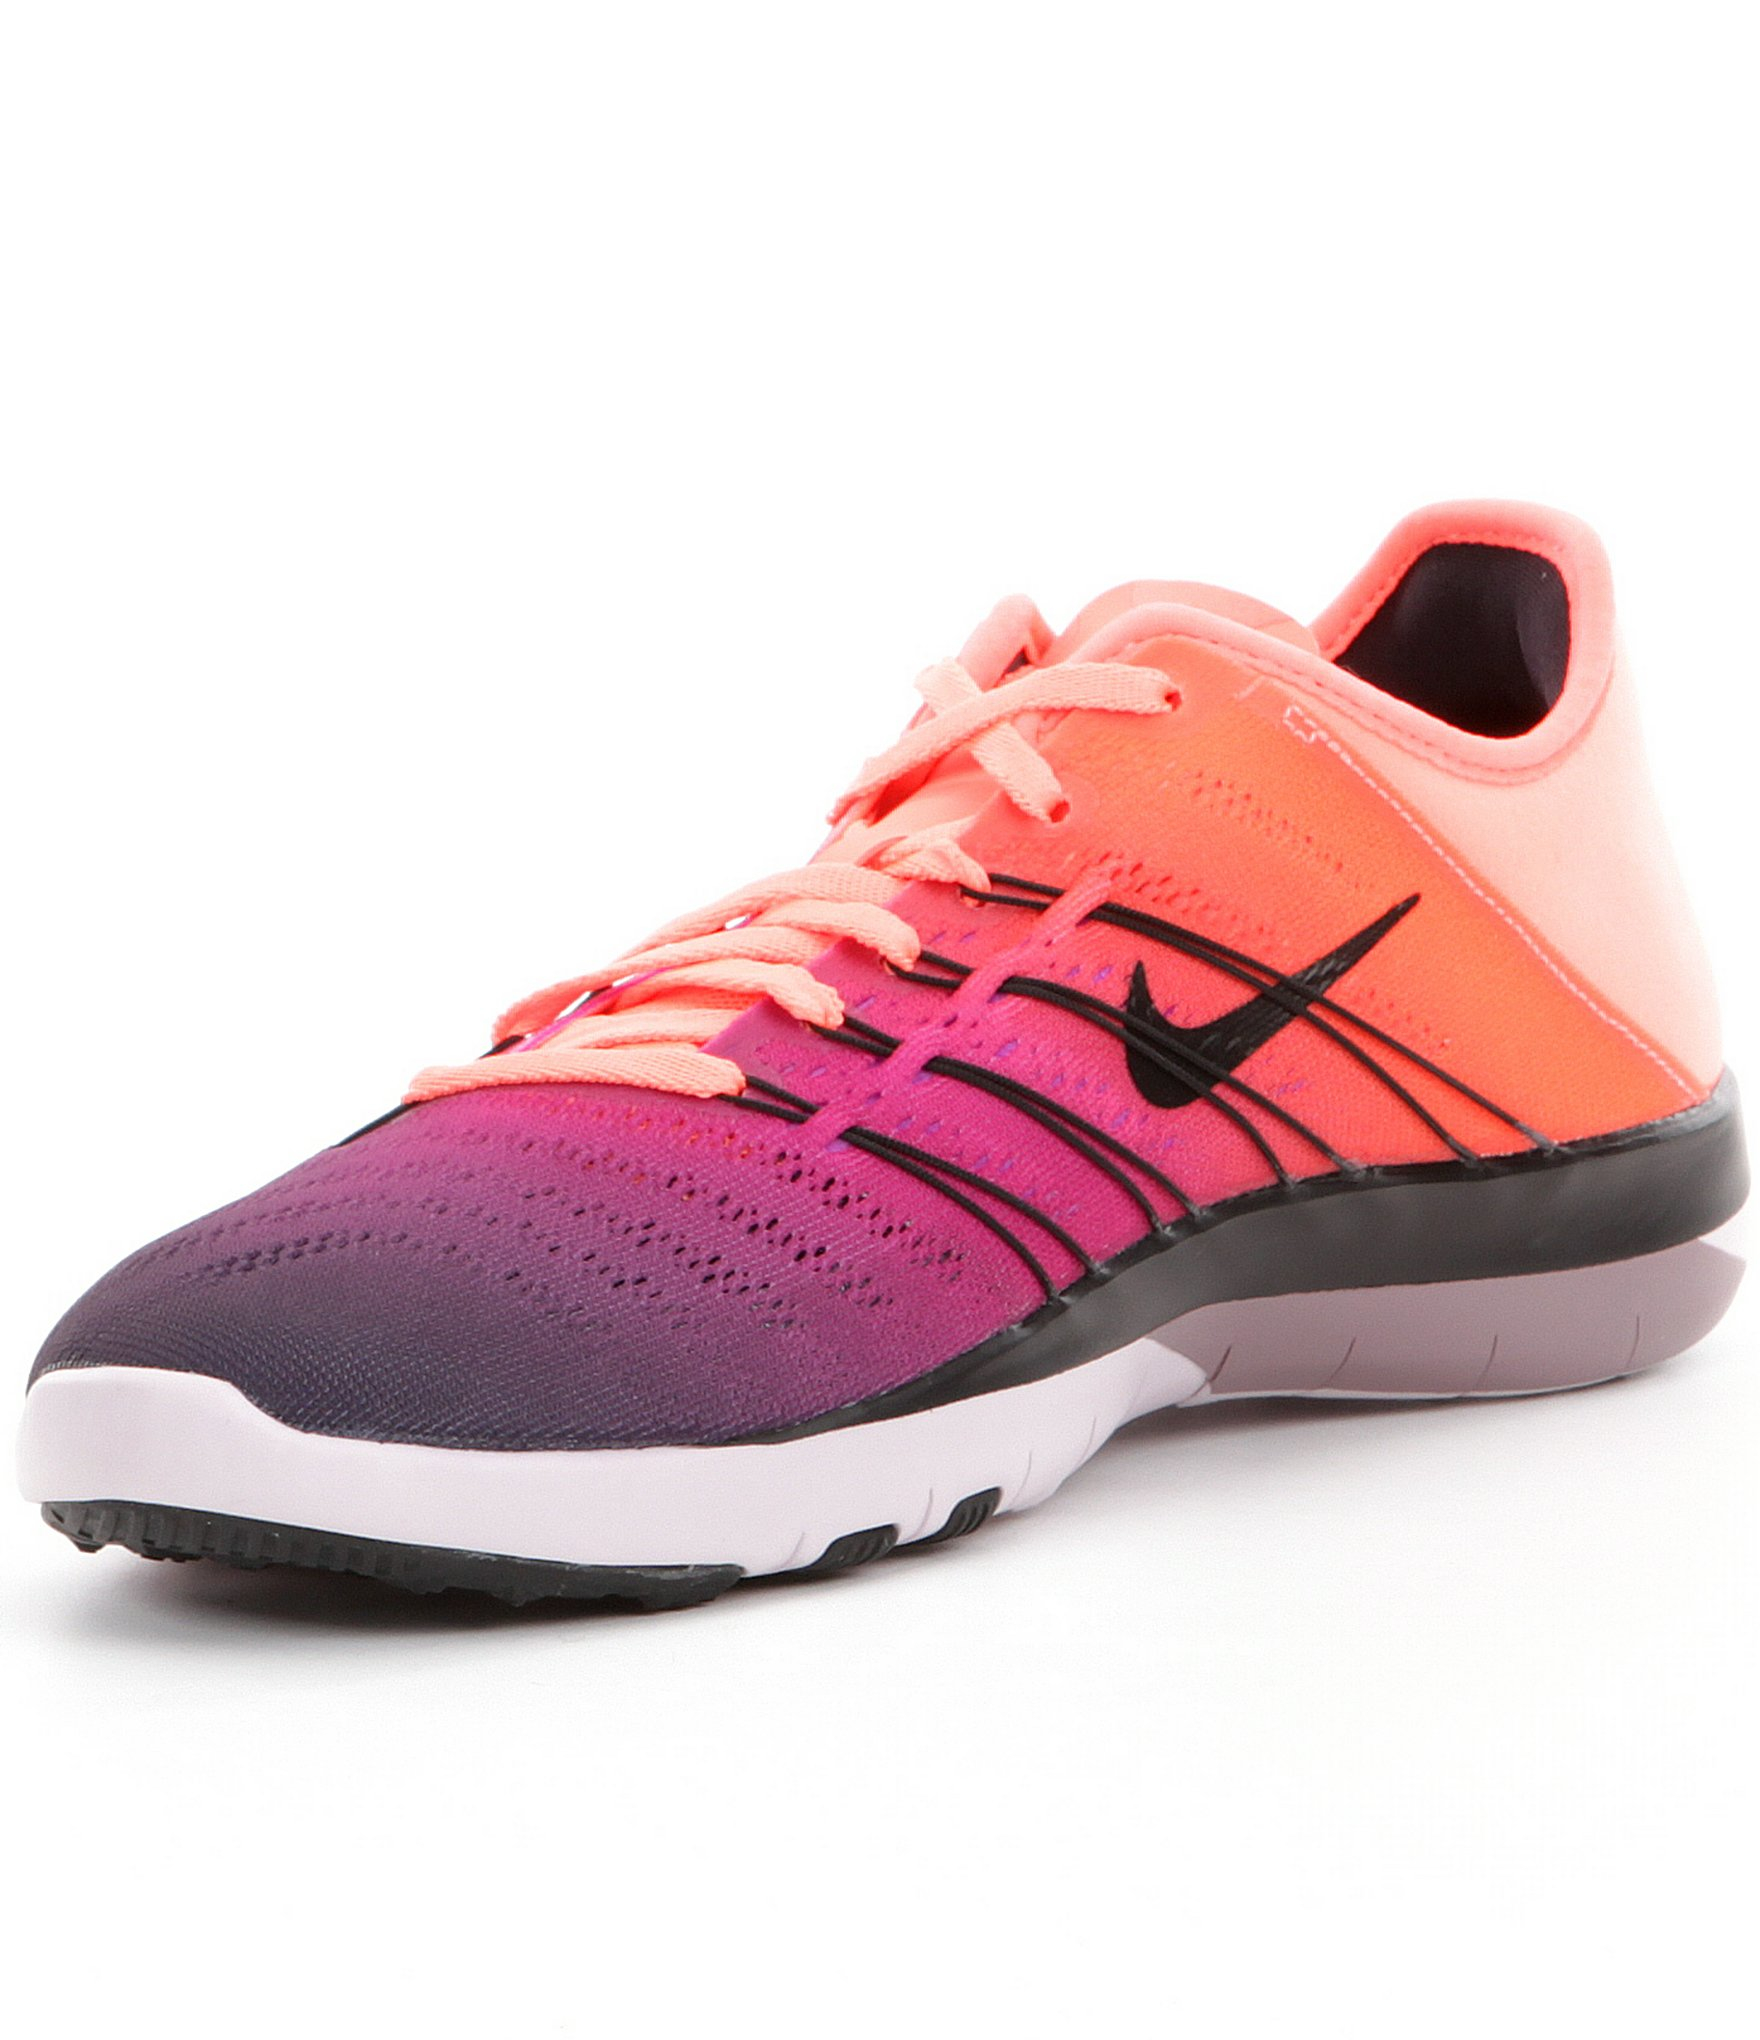 42f1b11a3f59 Lyst - Nike Women´s Free Tr 6 Spectrum Training Shoes in Pink